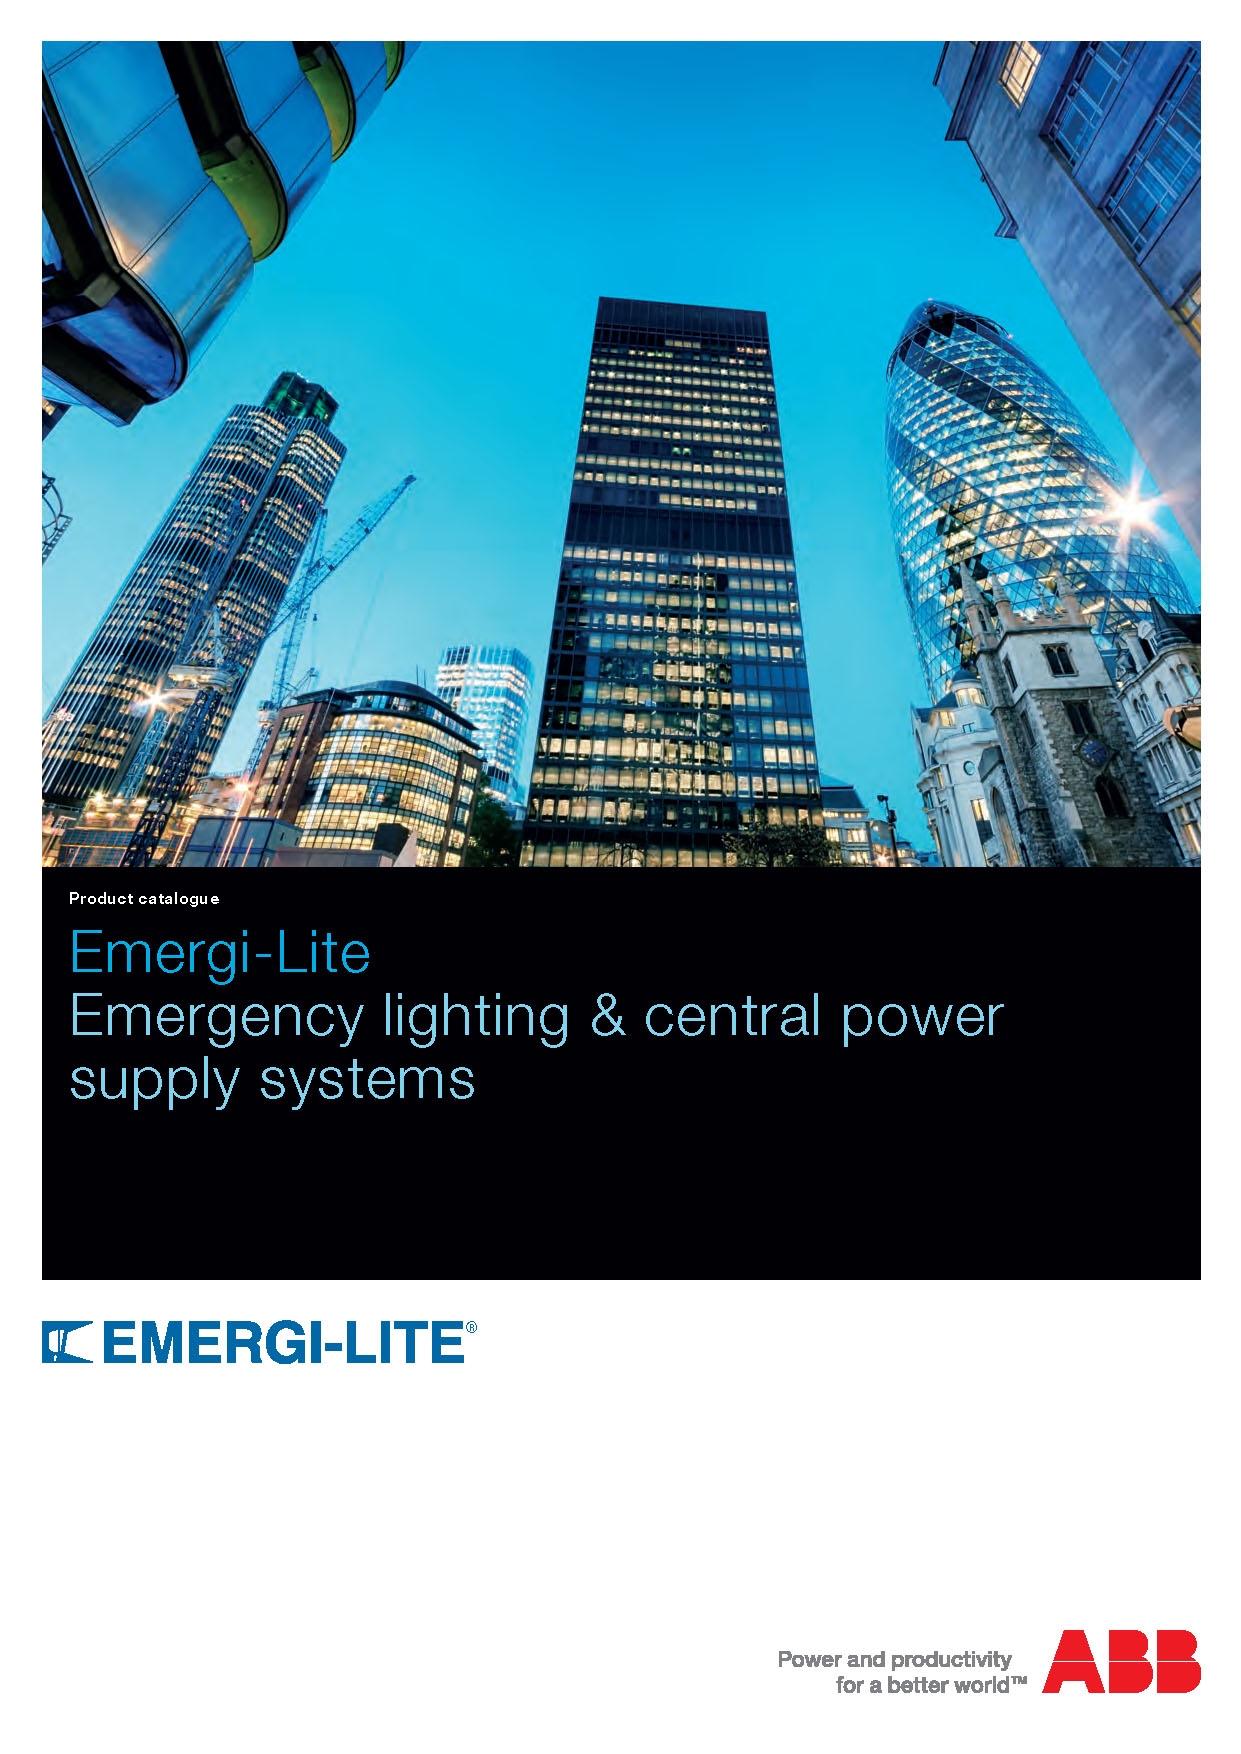 Emergency Lighting Product Catalogue